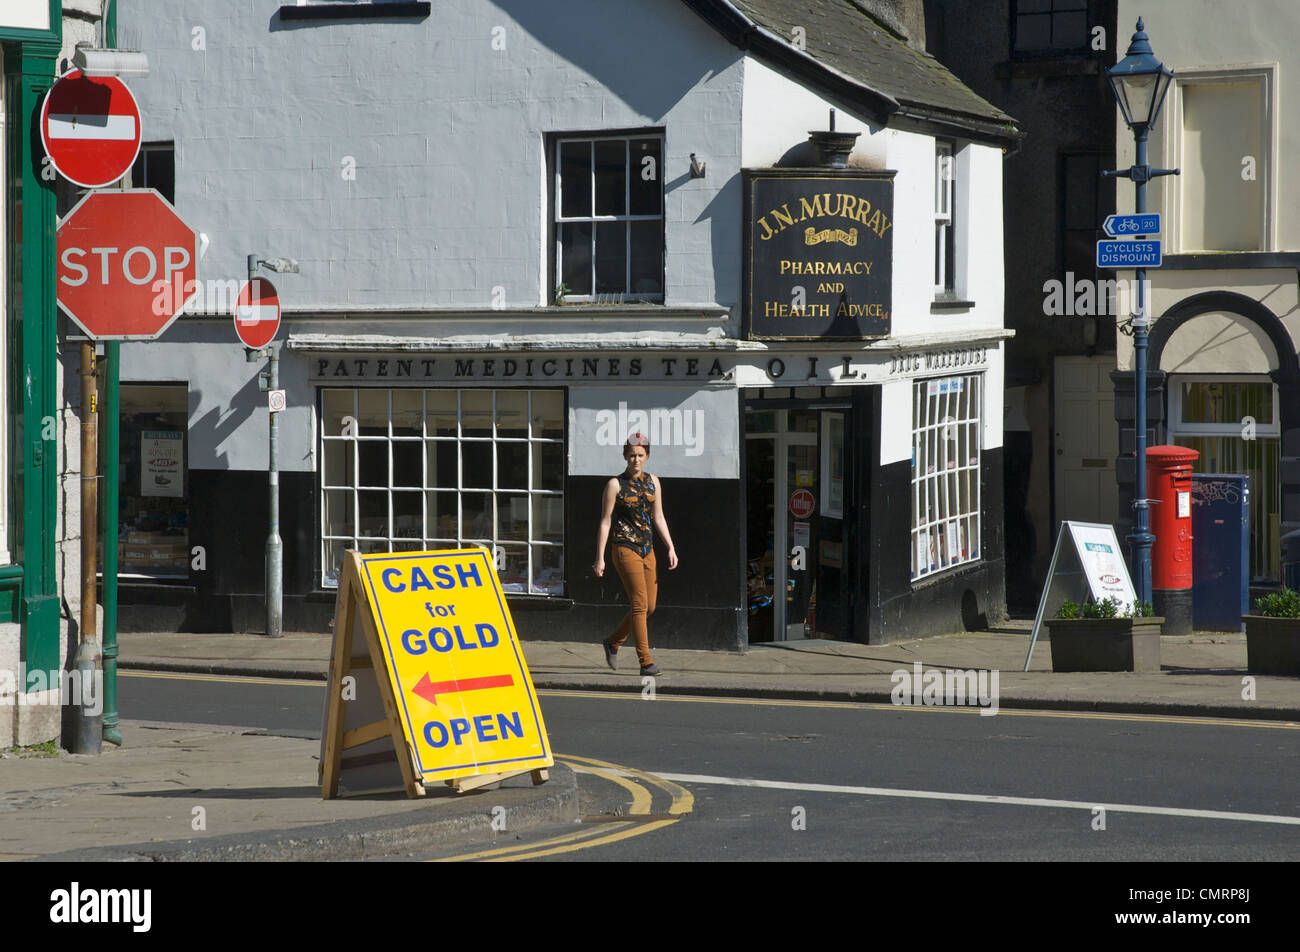 Cash for Gold sign in the town of Ulverston, Cumbria, England UK - Stock Image